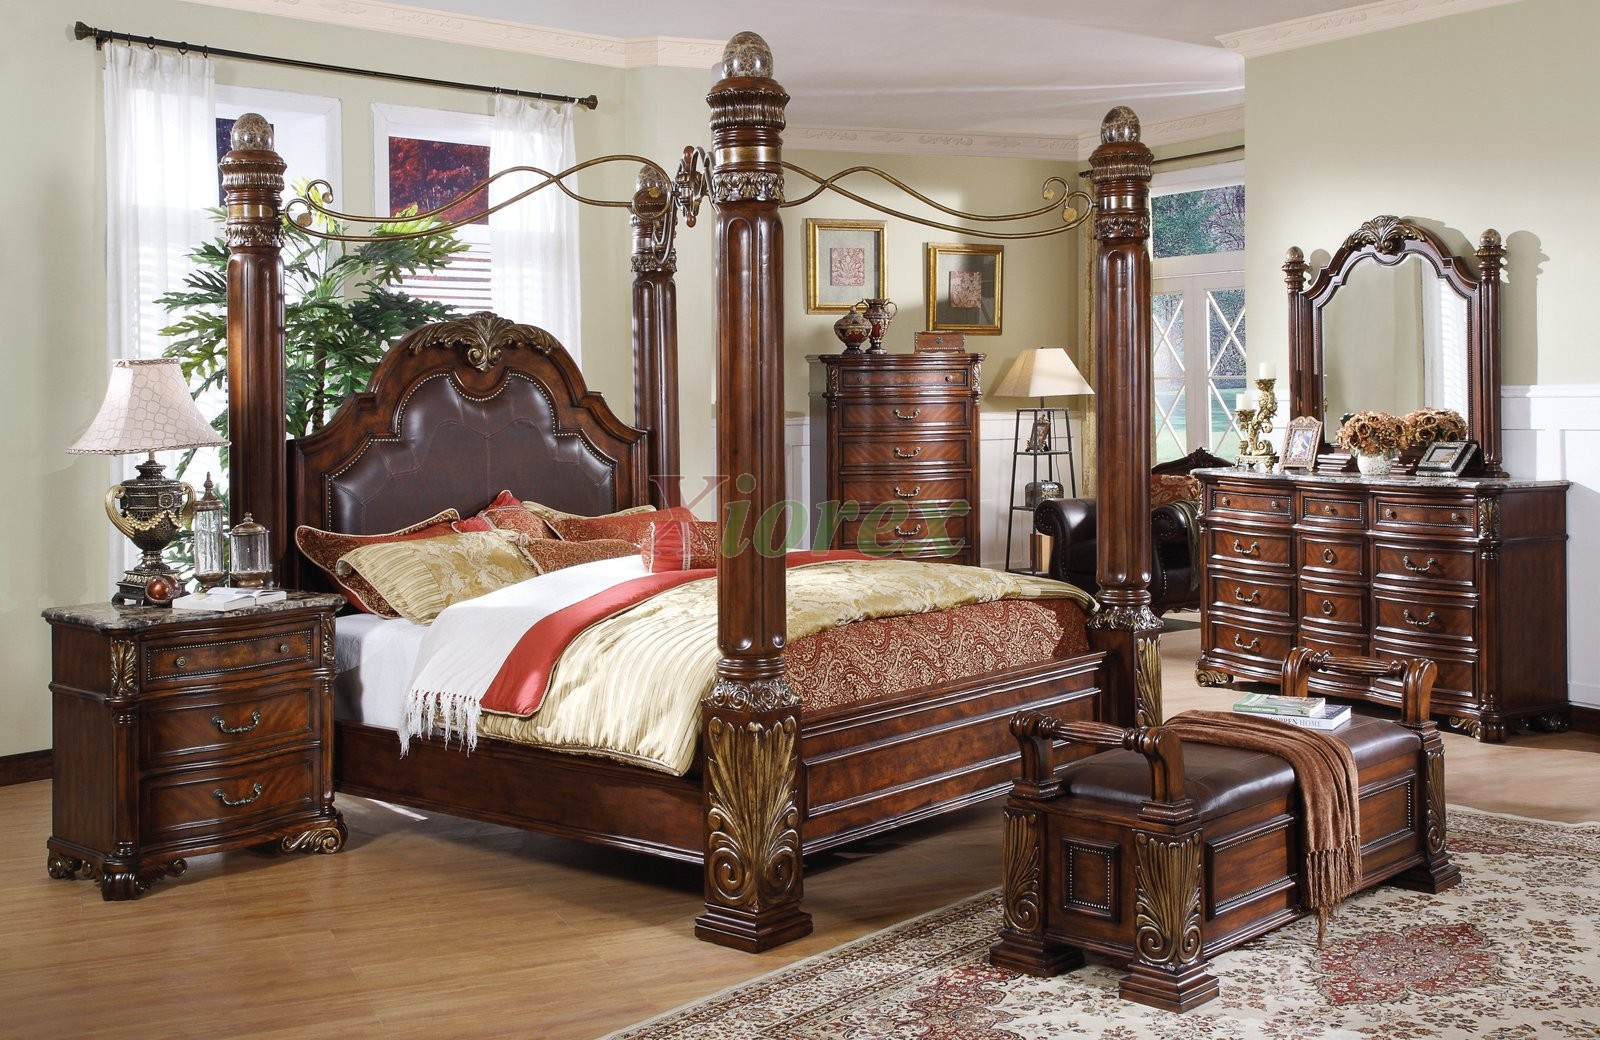 Poster Bedroom Set W Metal Canopy U0026 Leather Headboard Queen And King Beds  ...